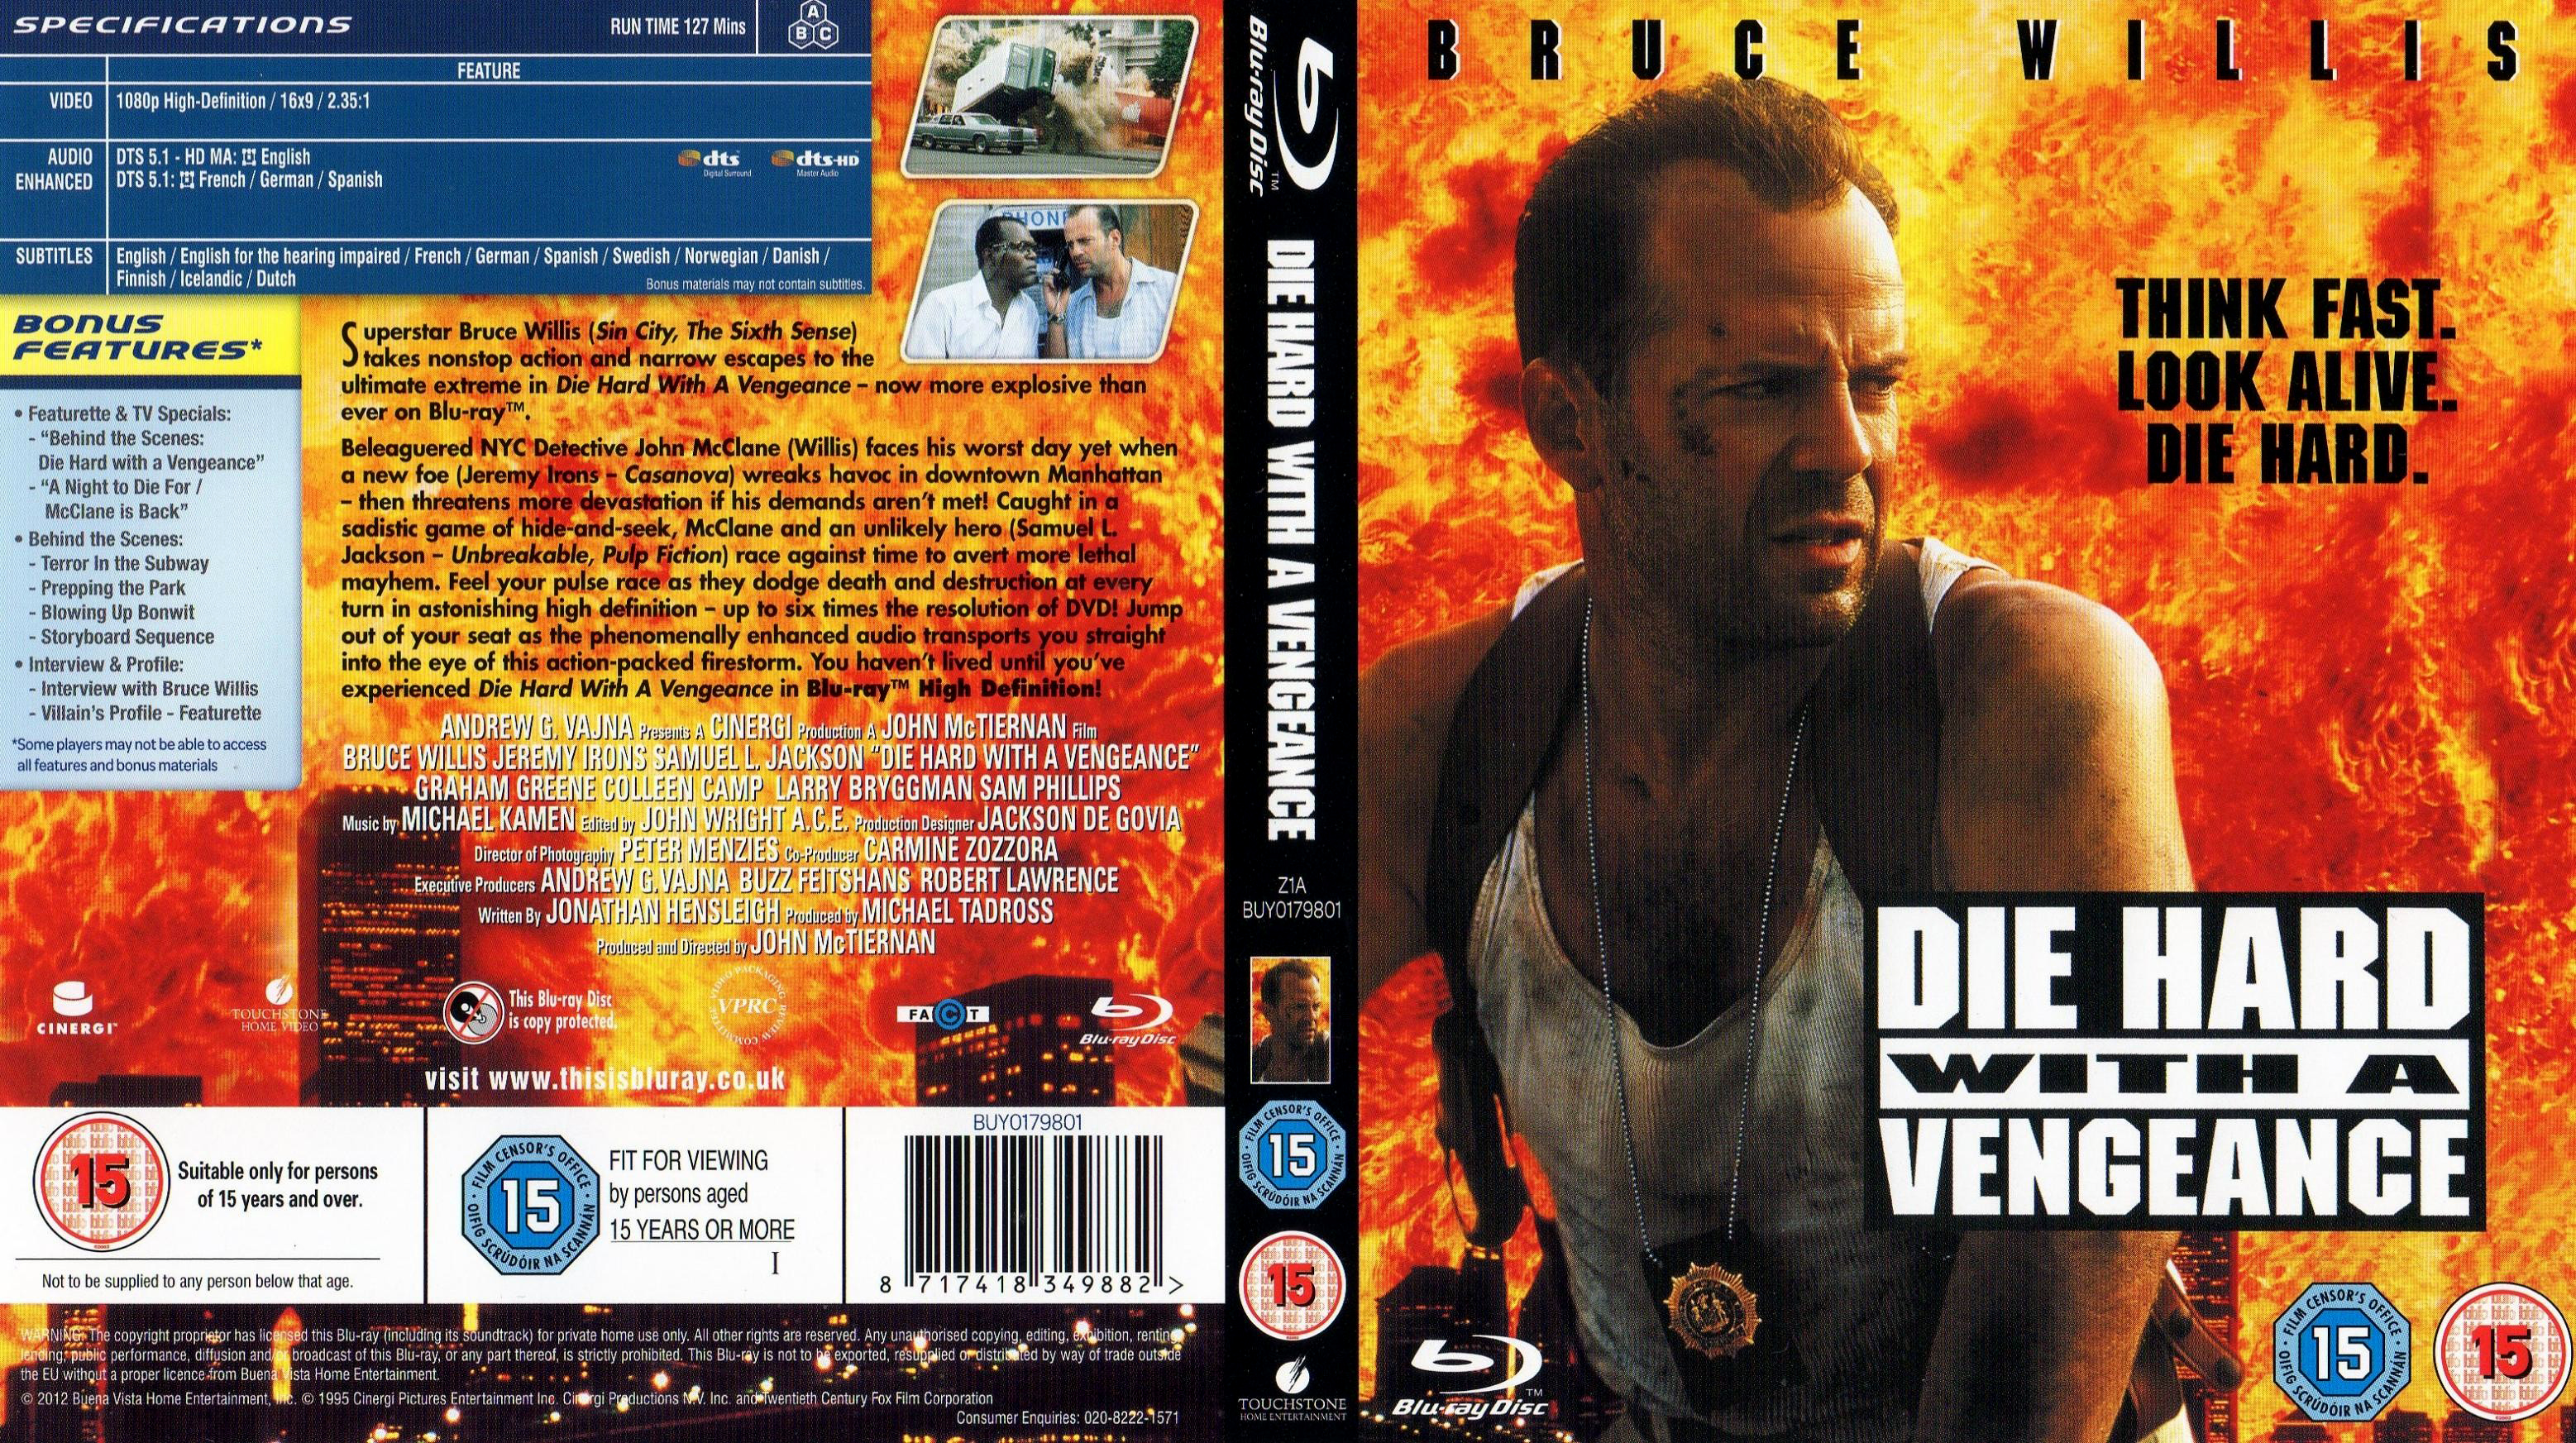 Covers Box Sk Die Hard 3 With A Vengeance 1995 Blu Ray High Quality Dvd Blueray Movie